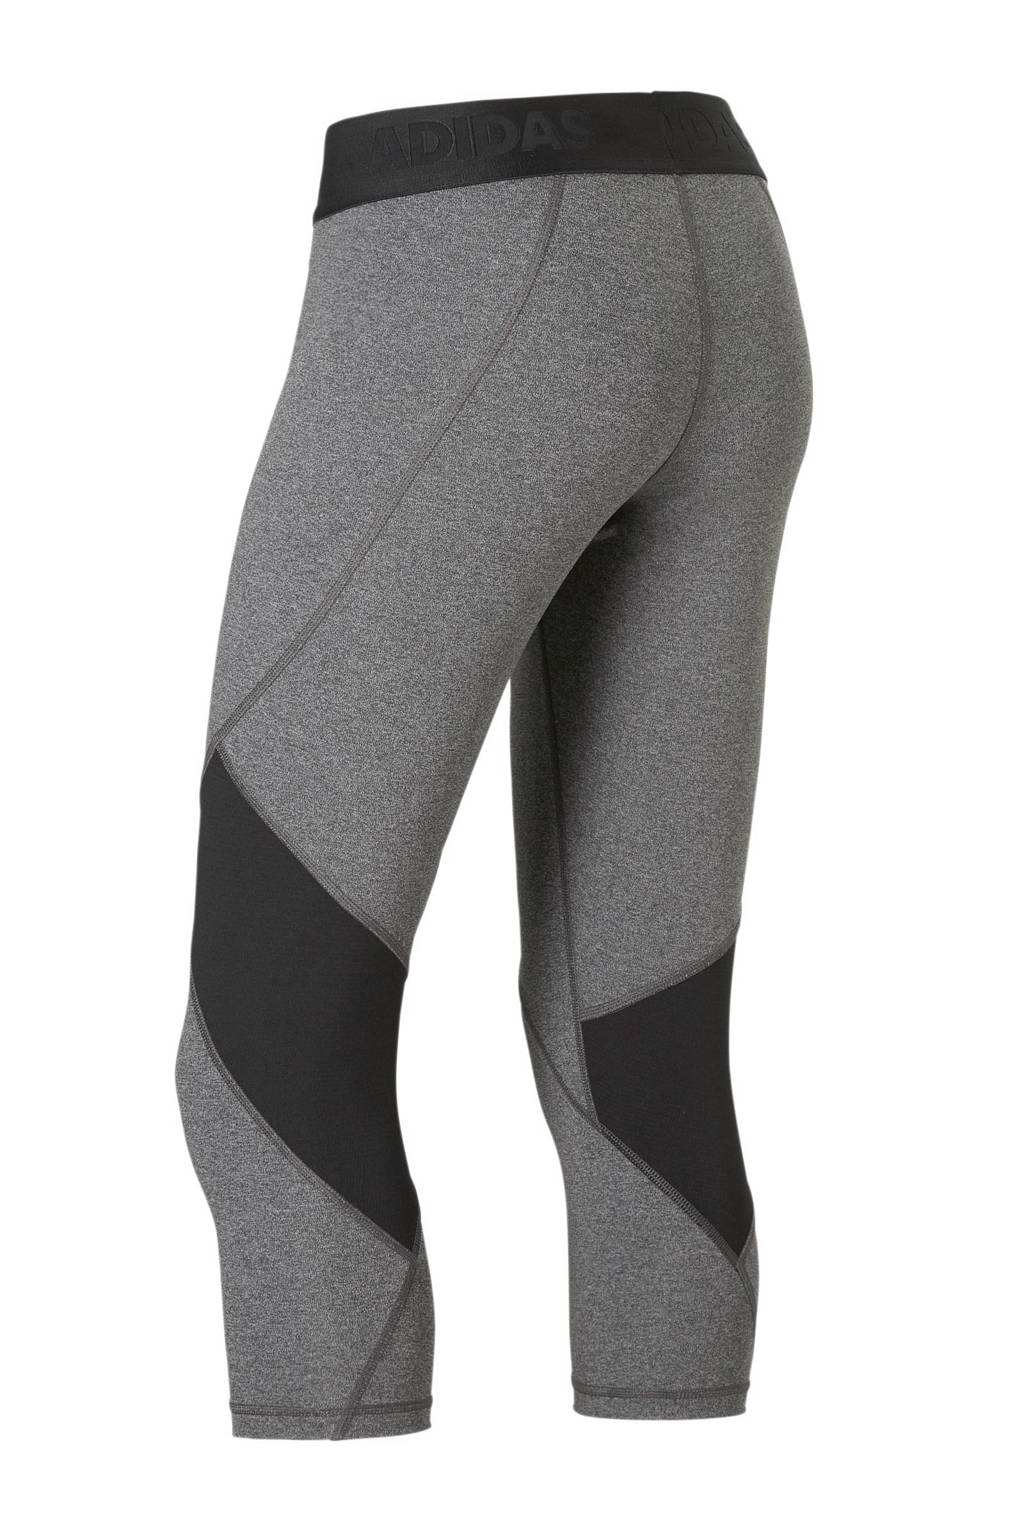 Capri Sportlegging.Adidas Performance Capri Sportlegging Wehkamp